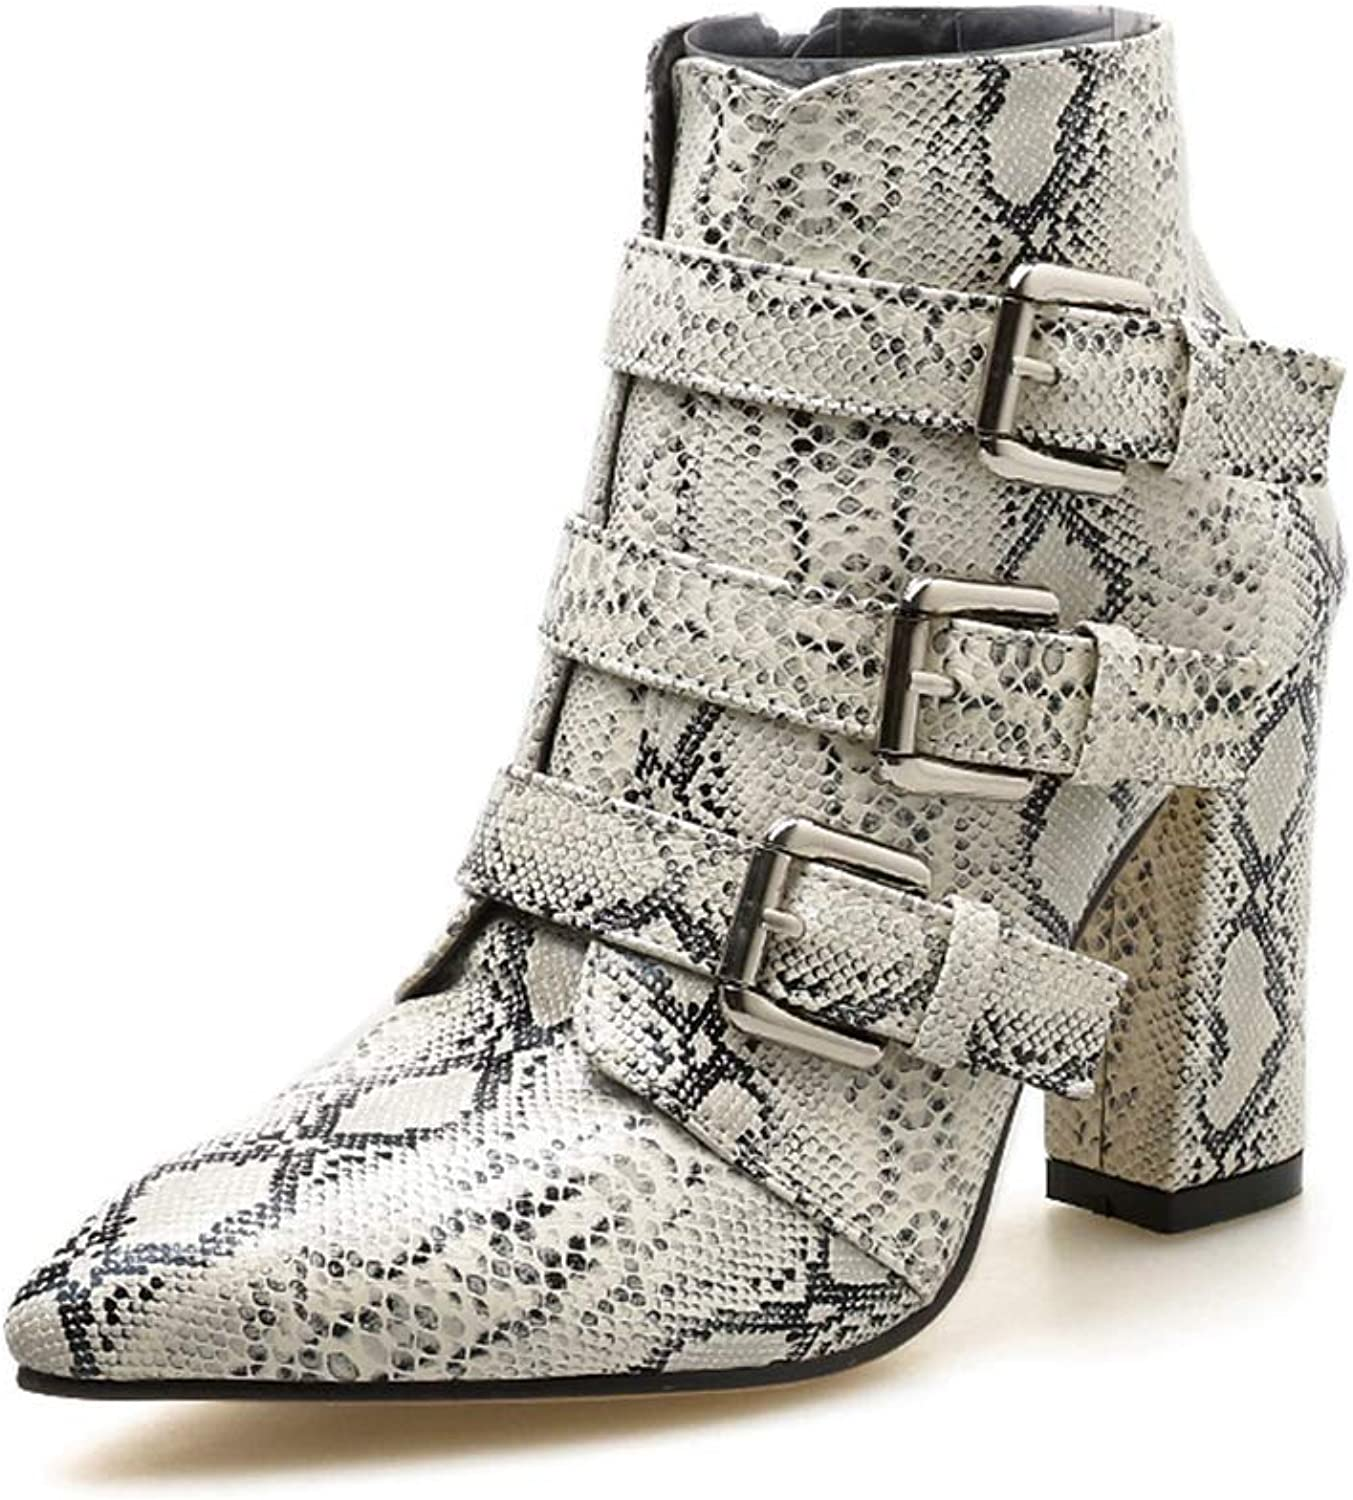 Lelehwhge Women's Fashion Sexy Boots Snakeskin Leopard Pattern Pointed Toe Side Zip Belt Buckle Thick Booties shoes Ankle Boots White 8.5 M US